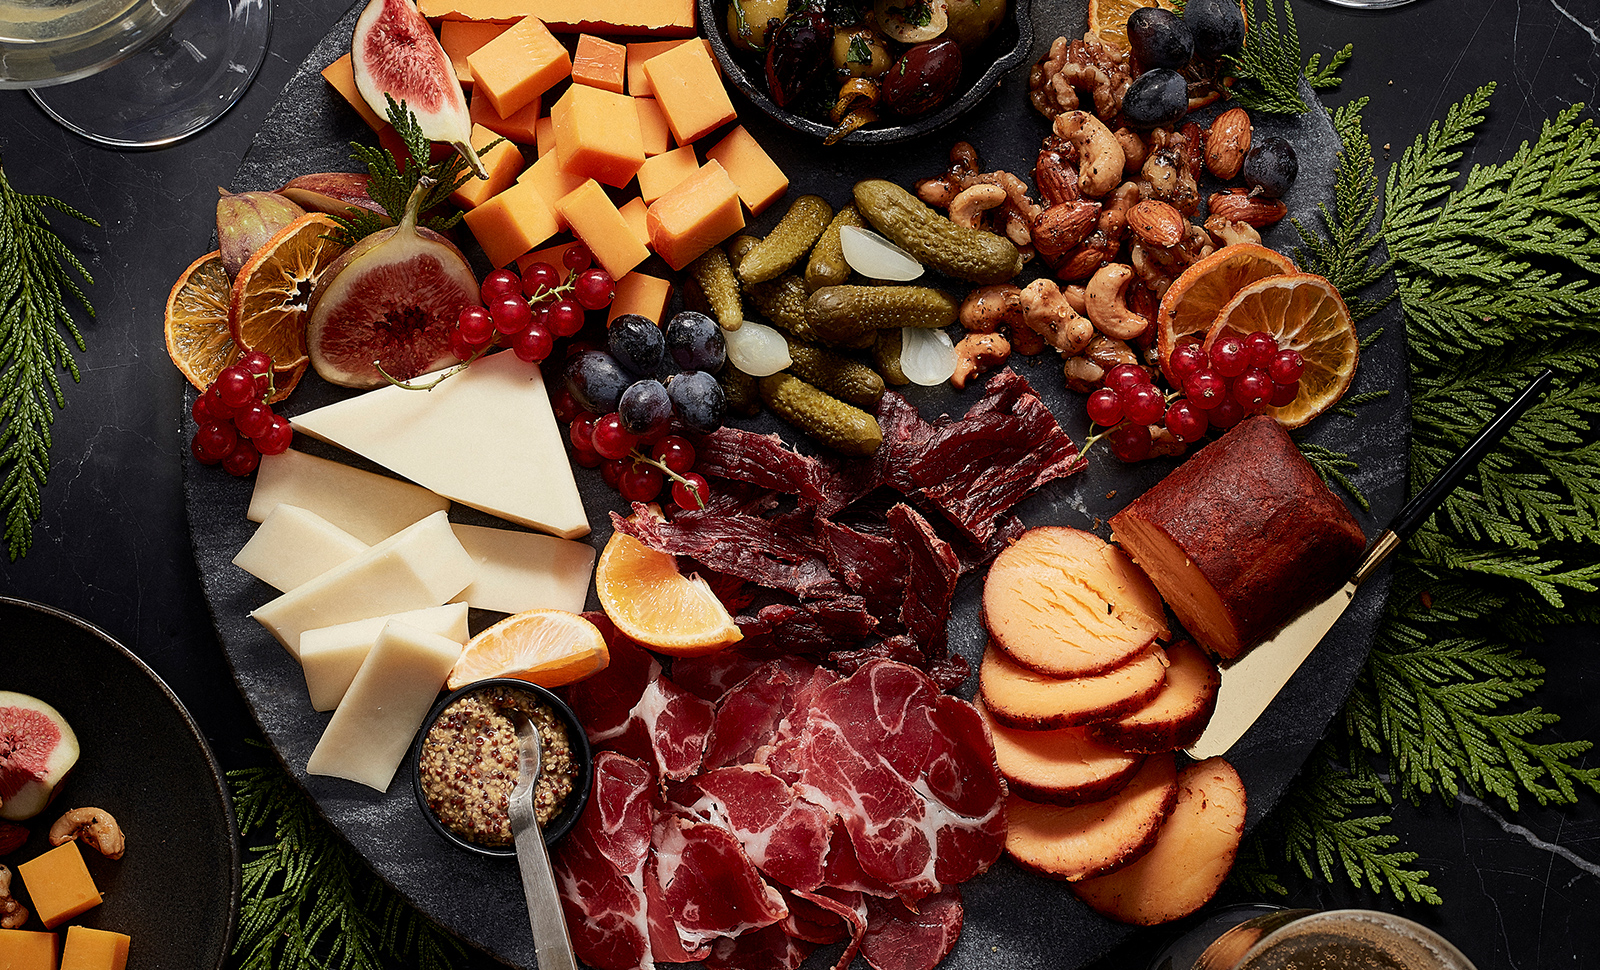 A winter inspired charcuterie board with a chipotle seasoned cheese log, cheddar cheese cubes, sweet pickles, mixed raw nuts, orange slices, grapes, blueberries and sliced meat.